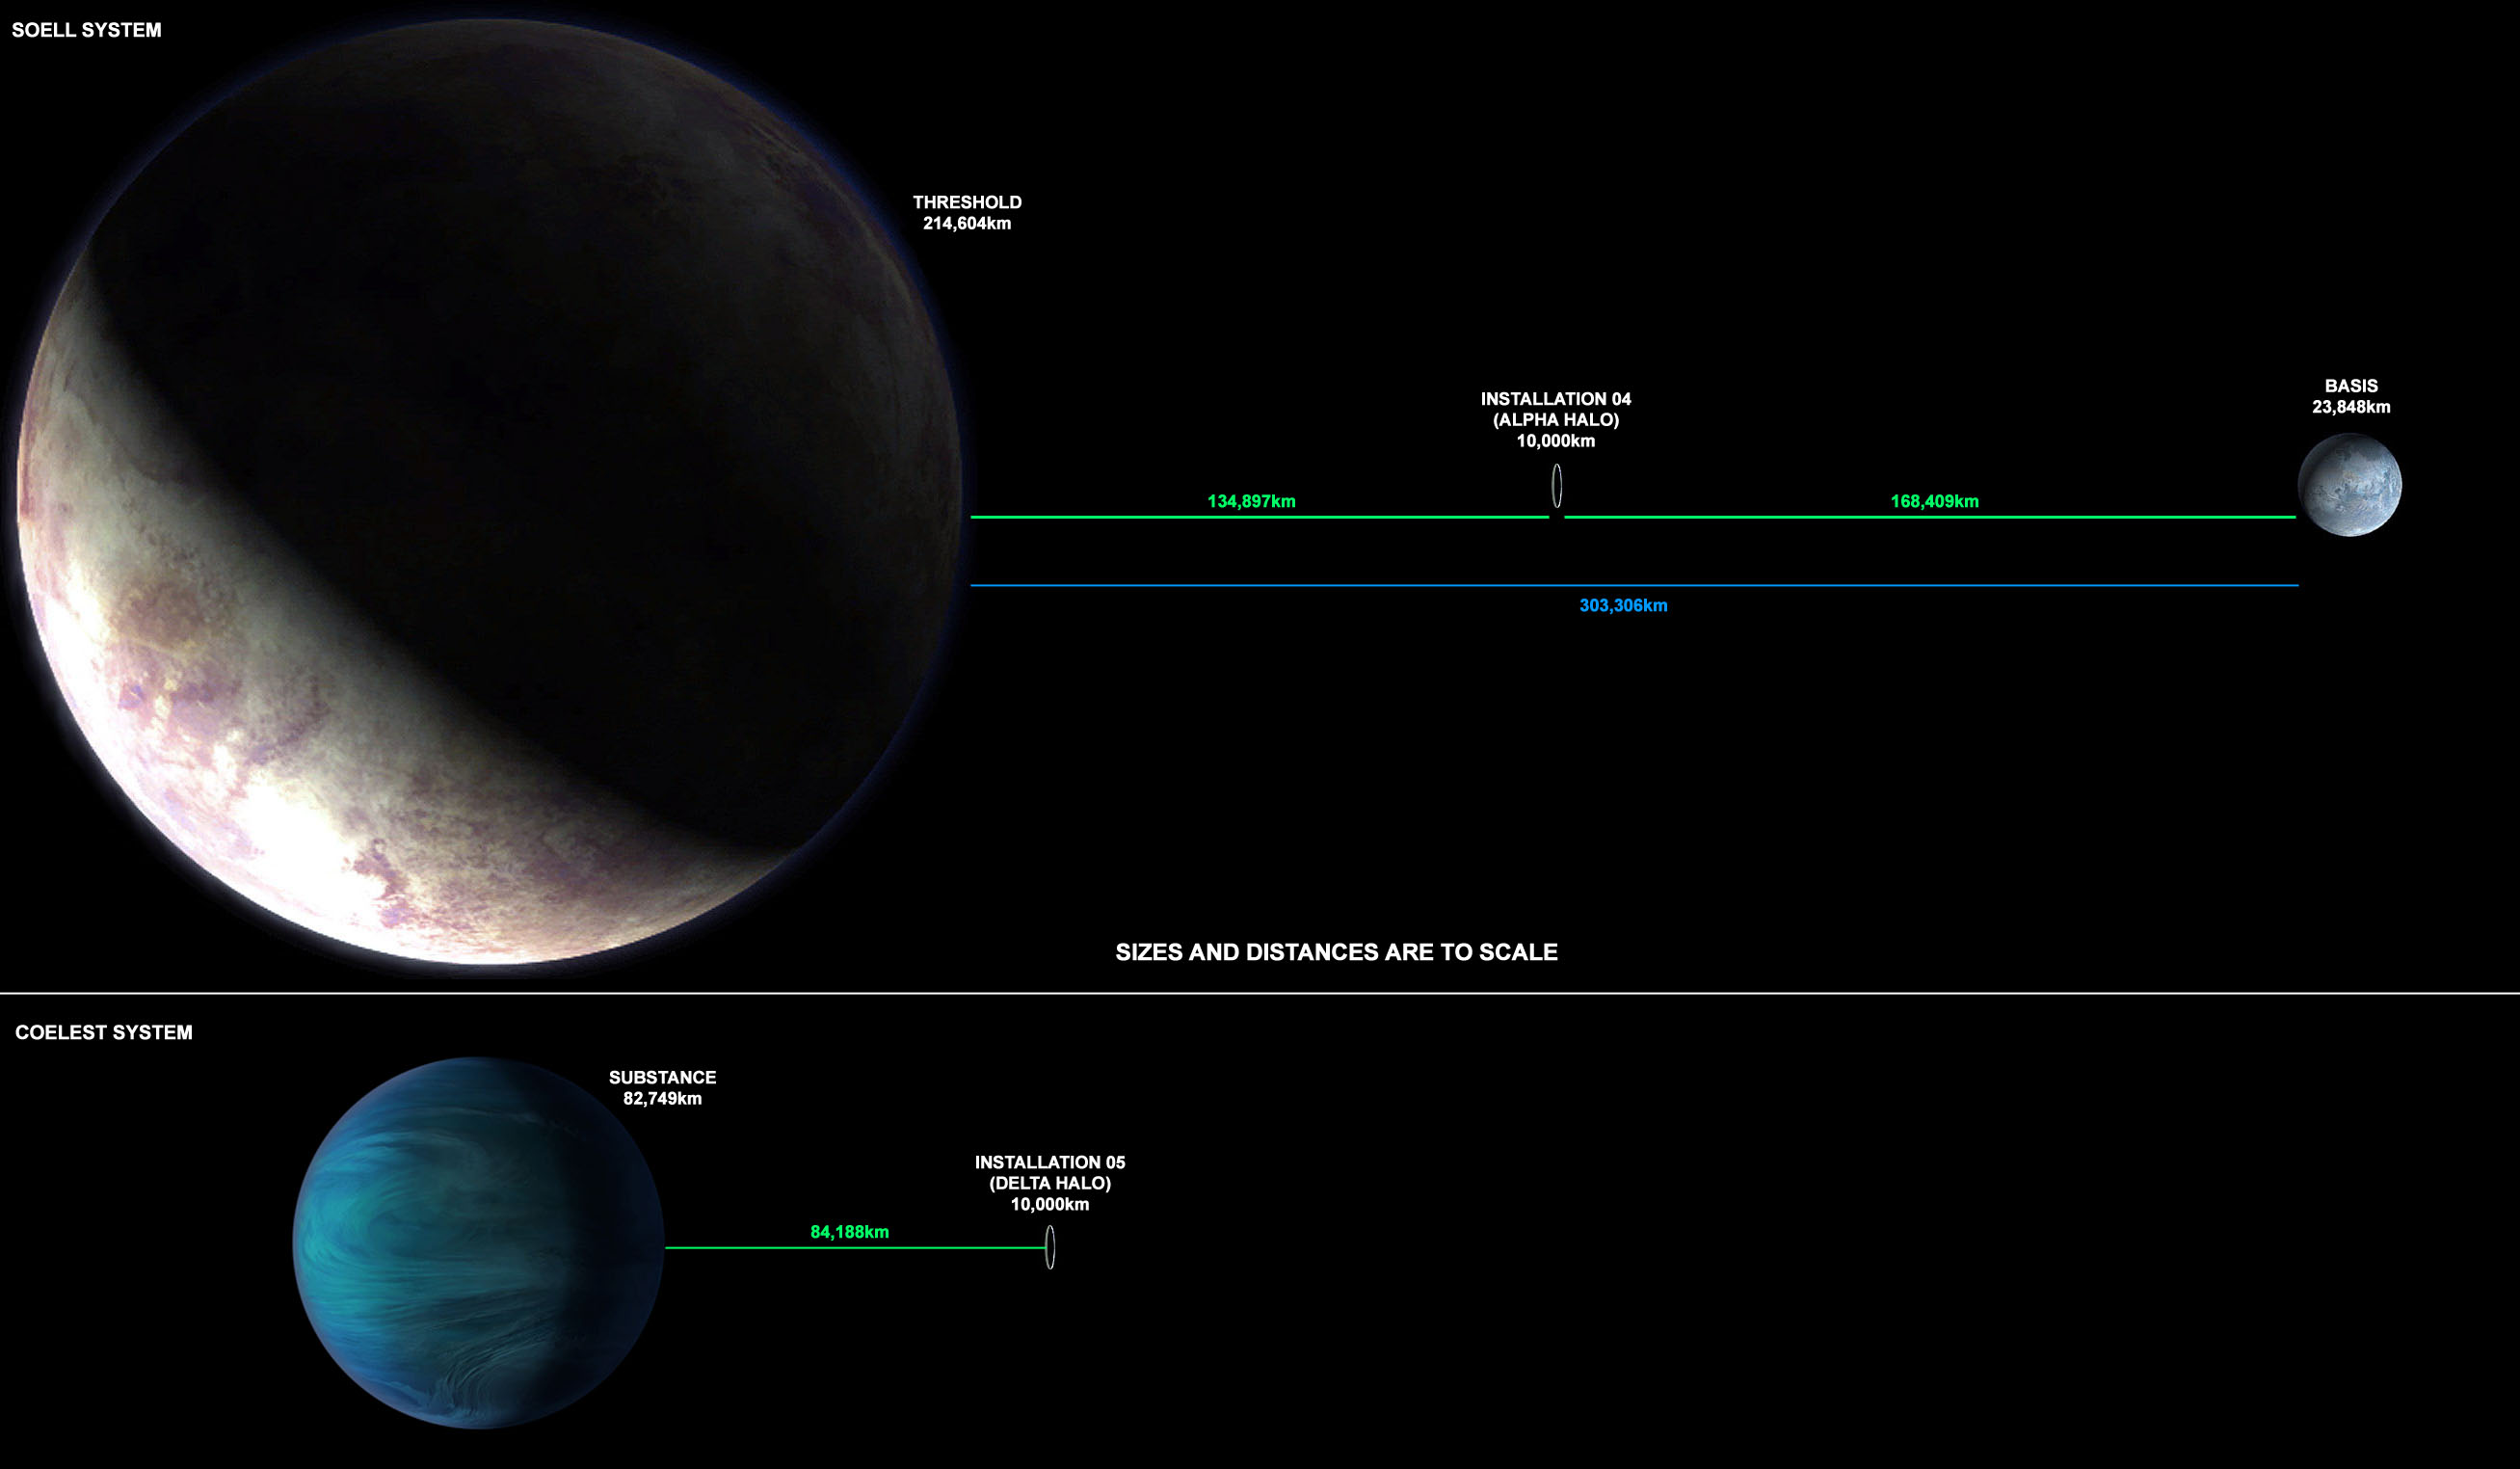 Halo-verse Planetary Scale